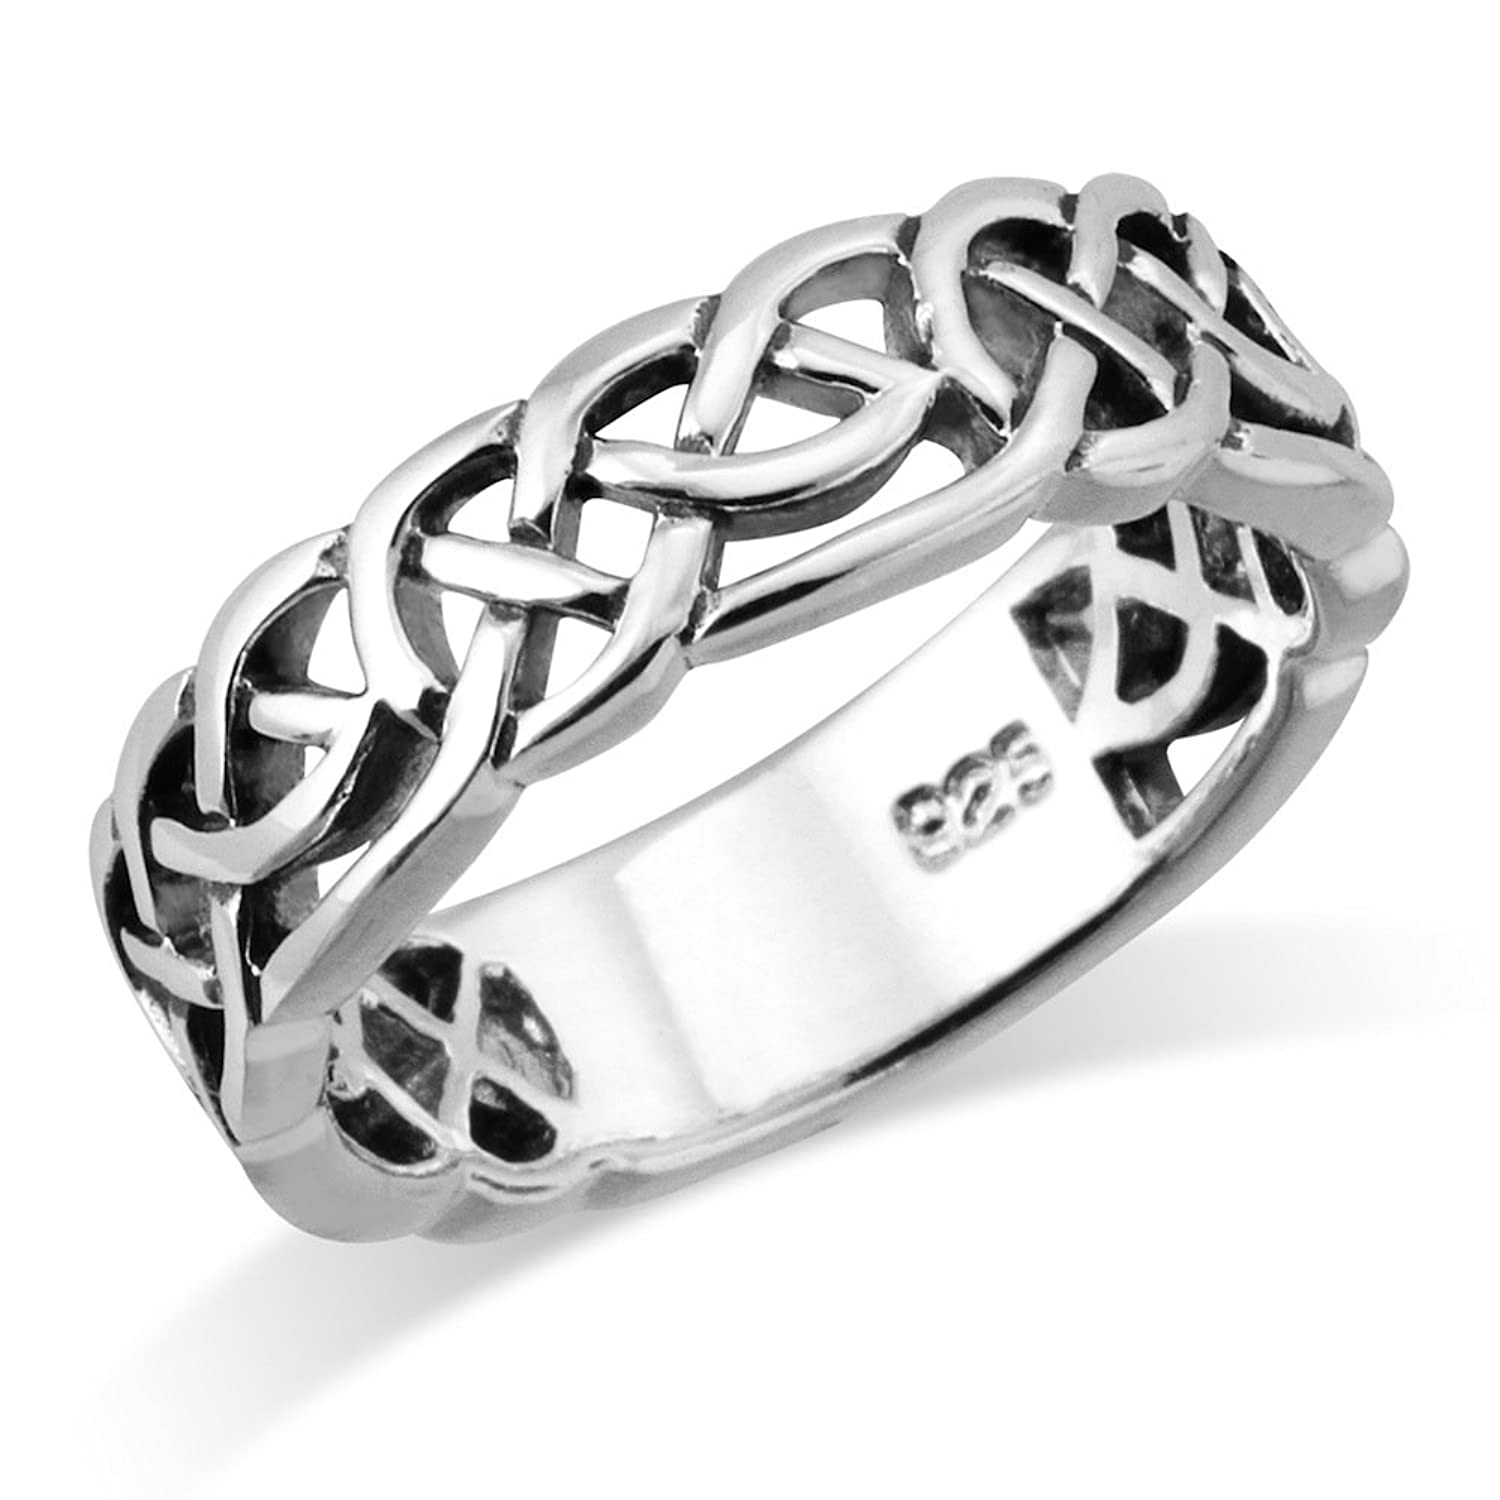 MIMI Sterling Silver Woven Celtic Knot Trinity Band Ring Amazon